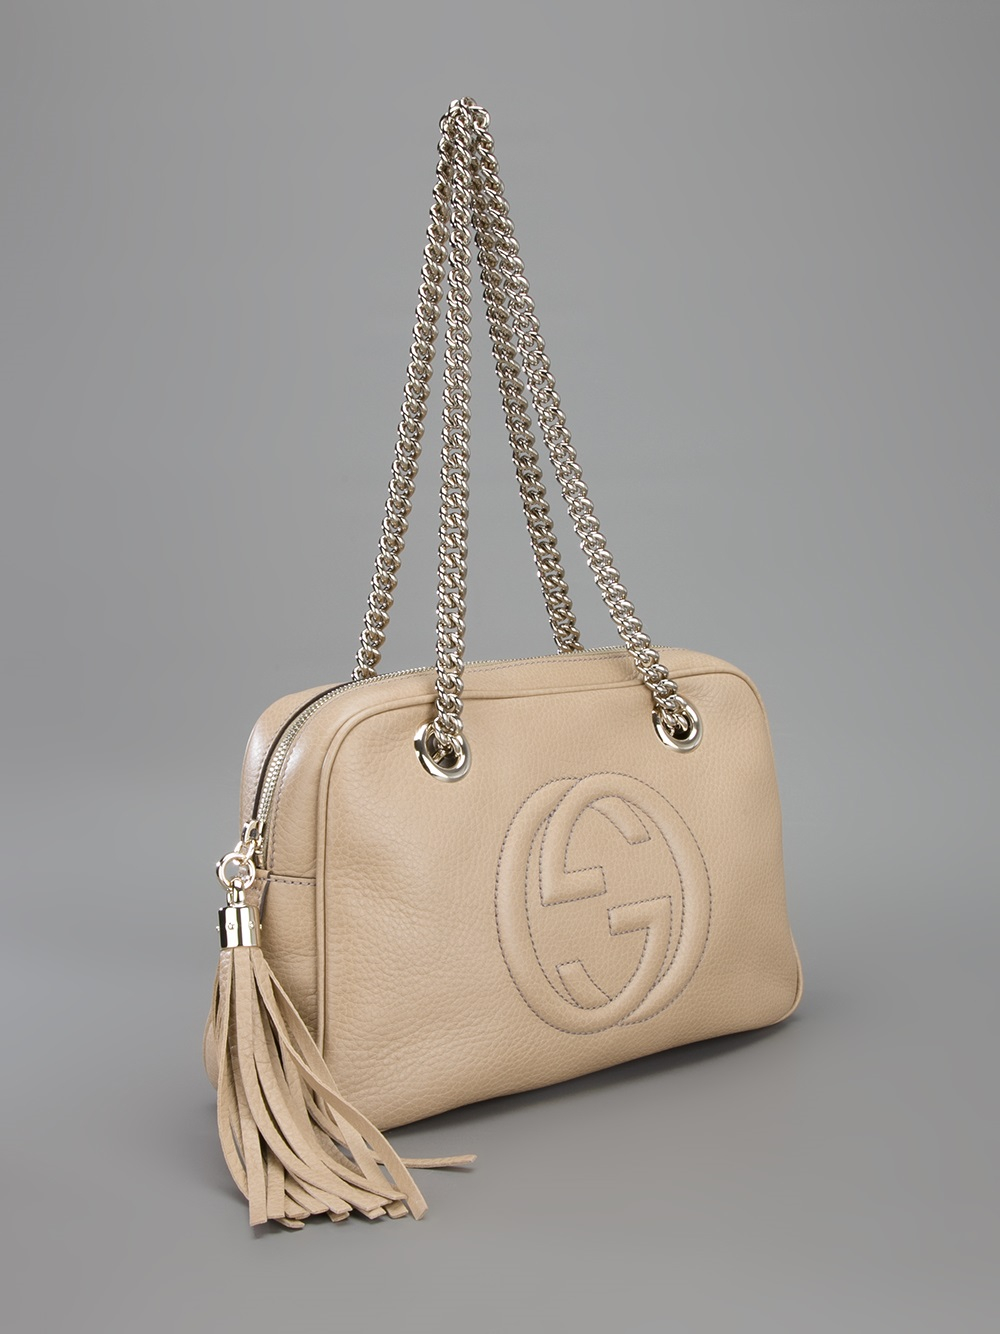 Gucci's New Look is a Big Hit Among Celebrity Bag Lovers ...